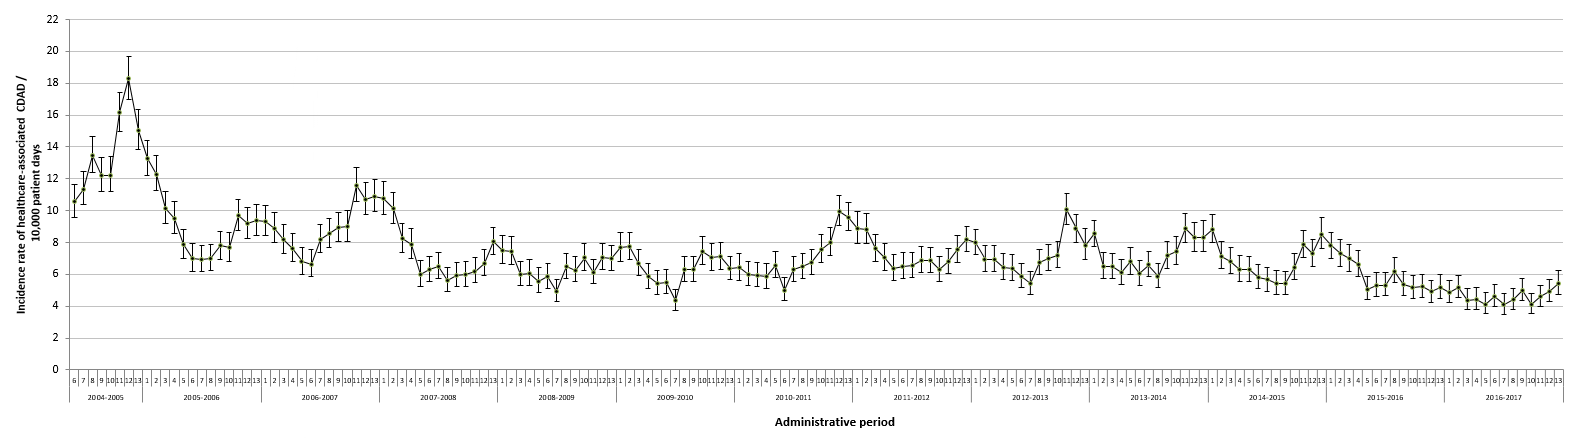 Figure 2 – Healthcare-associated CDAD (cat. 1a and 1b) Incidence Rate for Participating Healthcare Facilities, Québec, 2004–2005 to 2016–2017(Incidence Rate per 10,000 Patient Days [95% CI]) (N = 95)